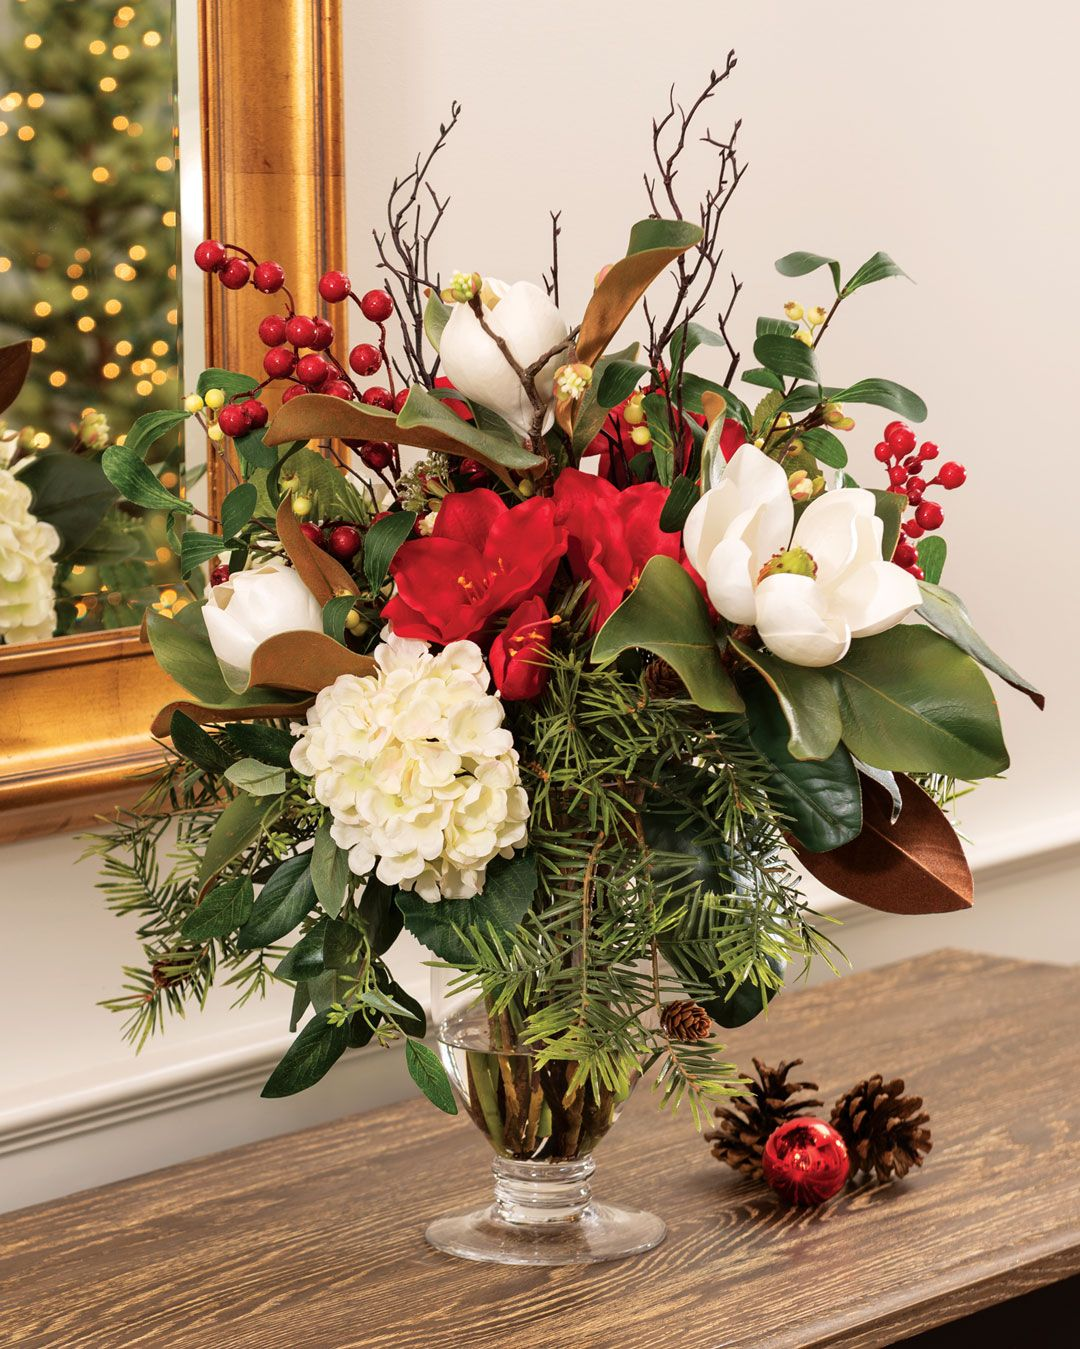 Magnolia Amaryllis Berriesartificial Holiday Centerpiece Christmas Floral Arrangements Christmas Flower Arrangements Holiday Centerpieces